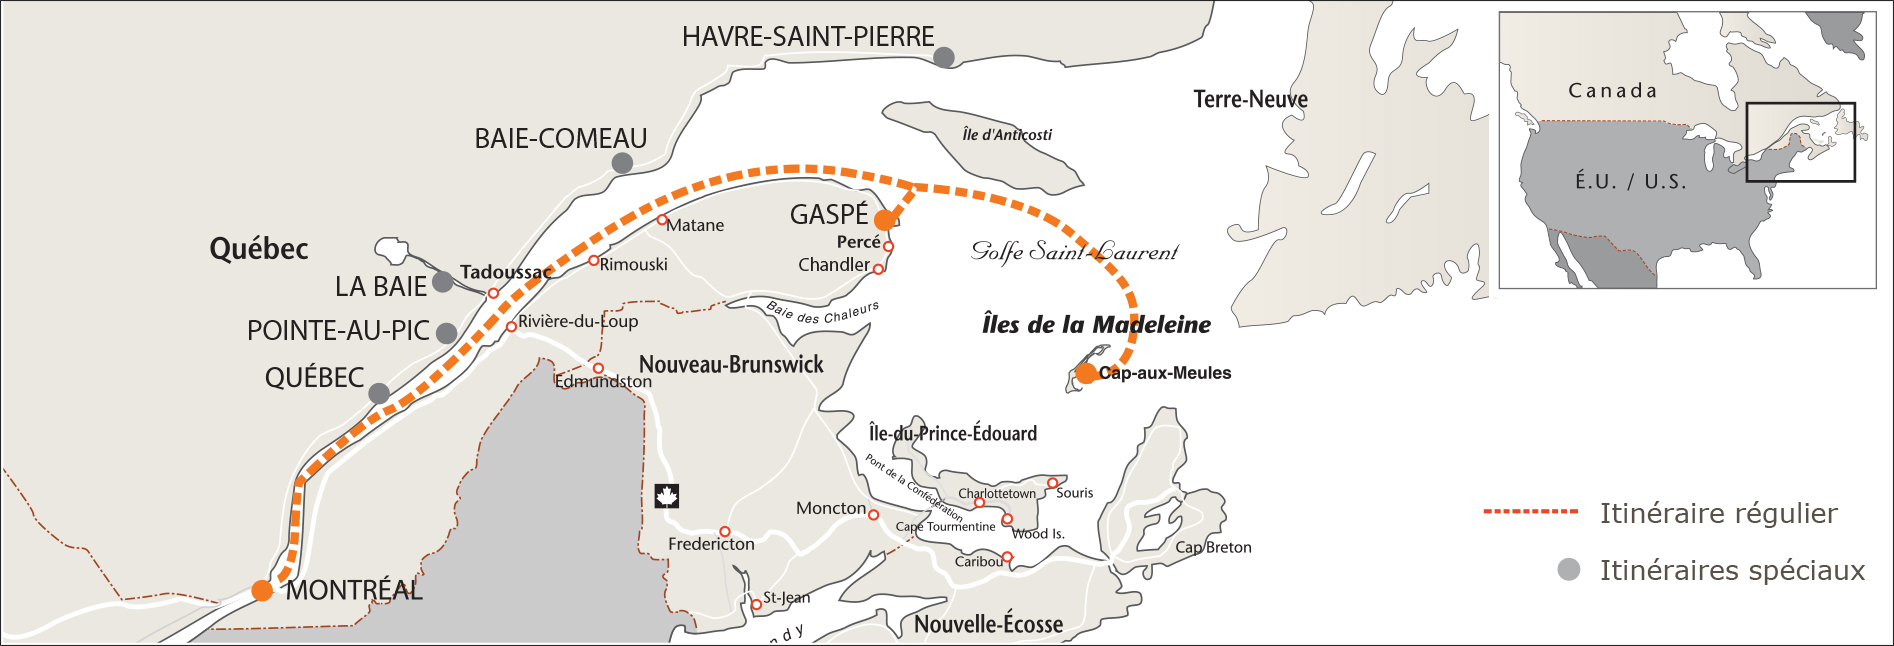 itineraire regulier MAP